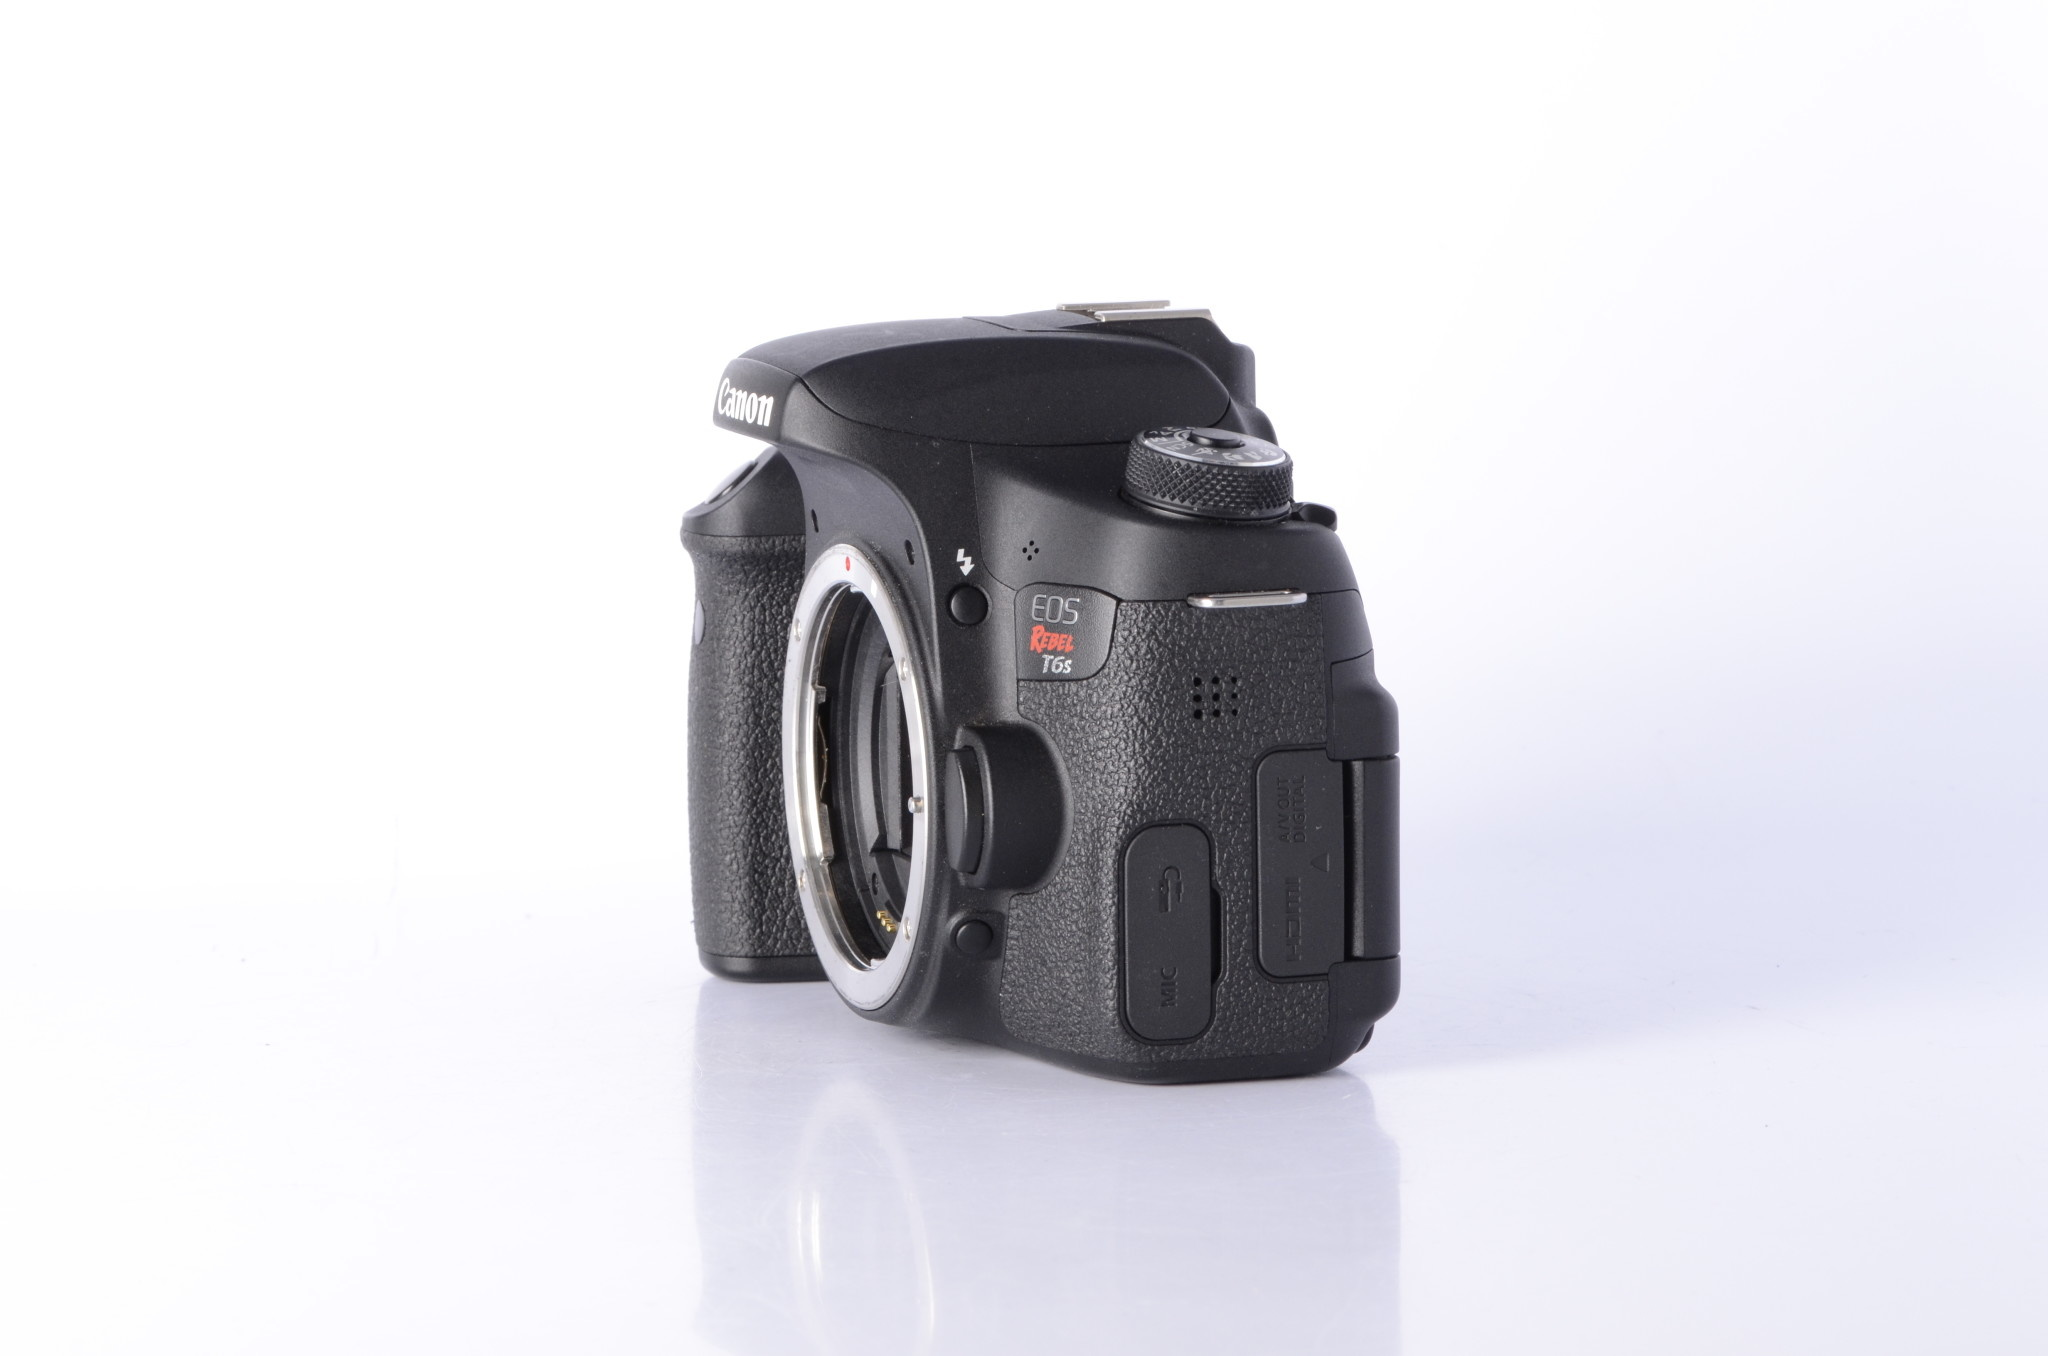 Canon Canon Rebel T6s DSLR Camera Body SN: 032032006320 *